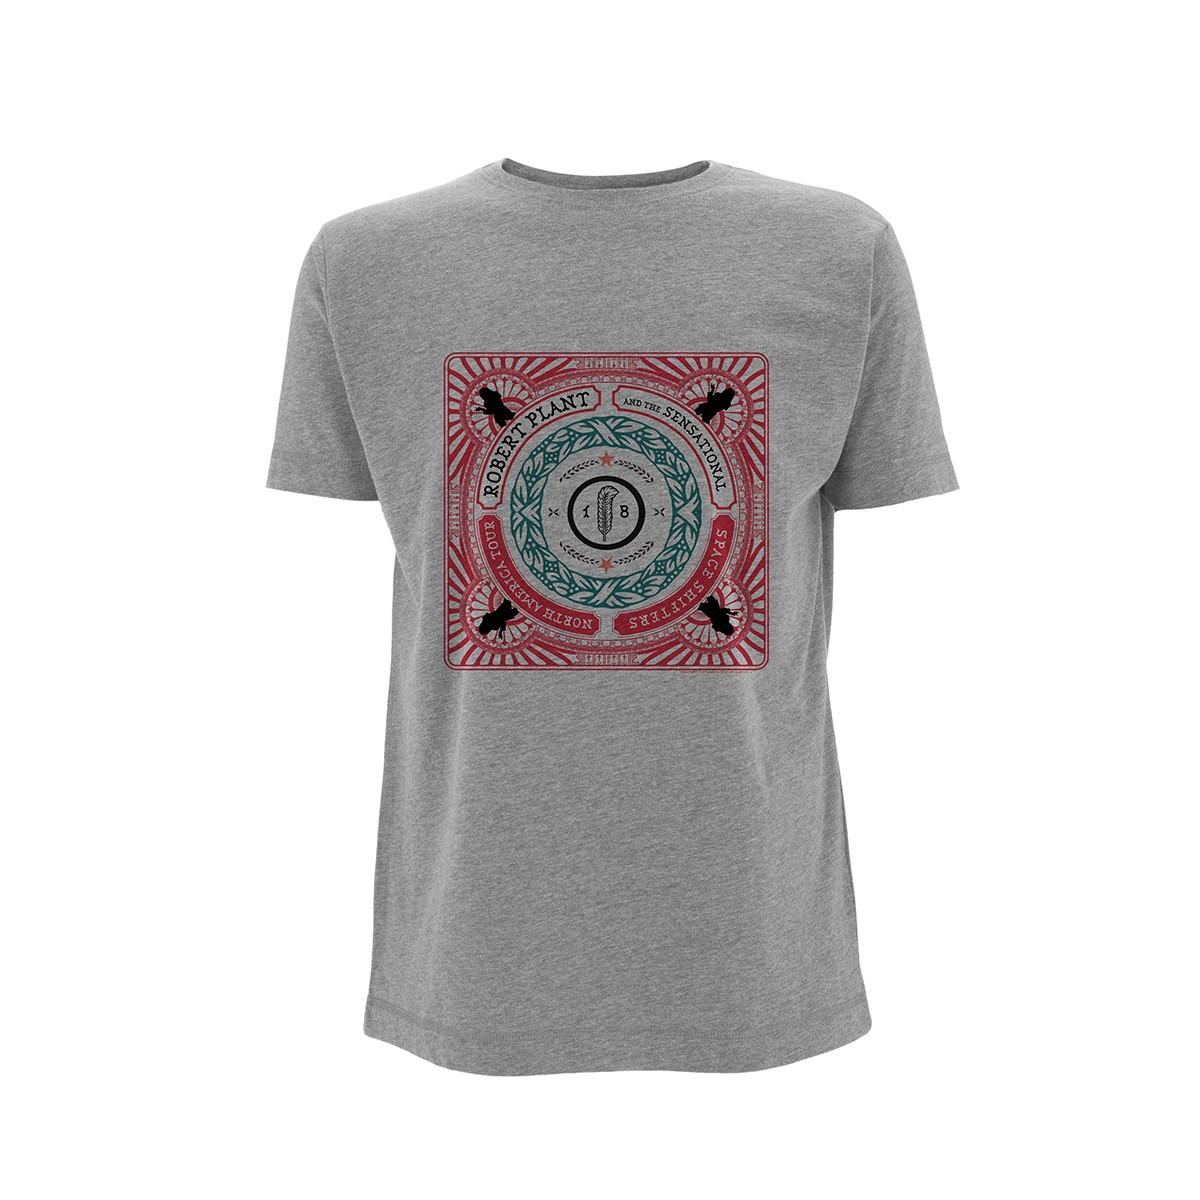 Retrographic North America Tour -  Grey Tee - Robert Plant